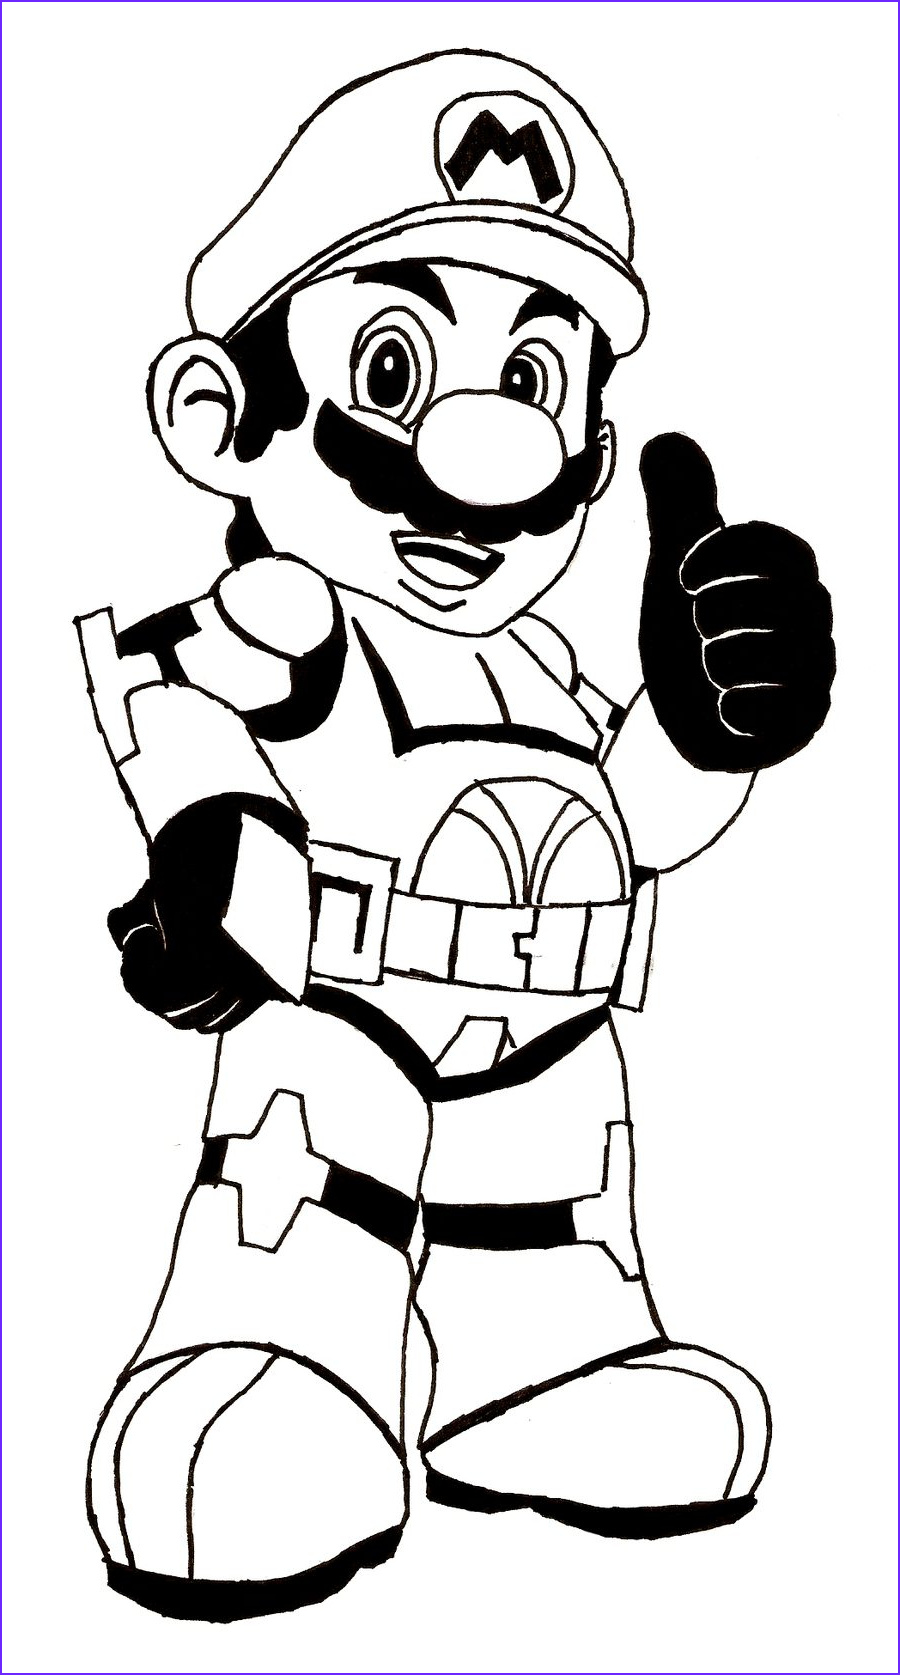 Luigi Coloring Pages Awesome Collection Mario and Luigi Free Coloring Pages Coloring Home